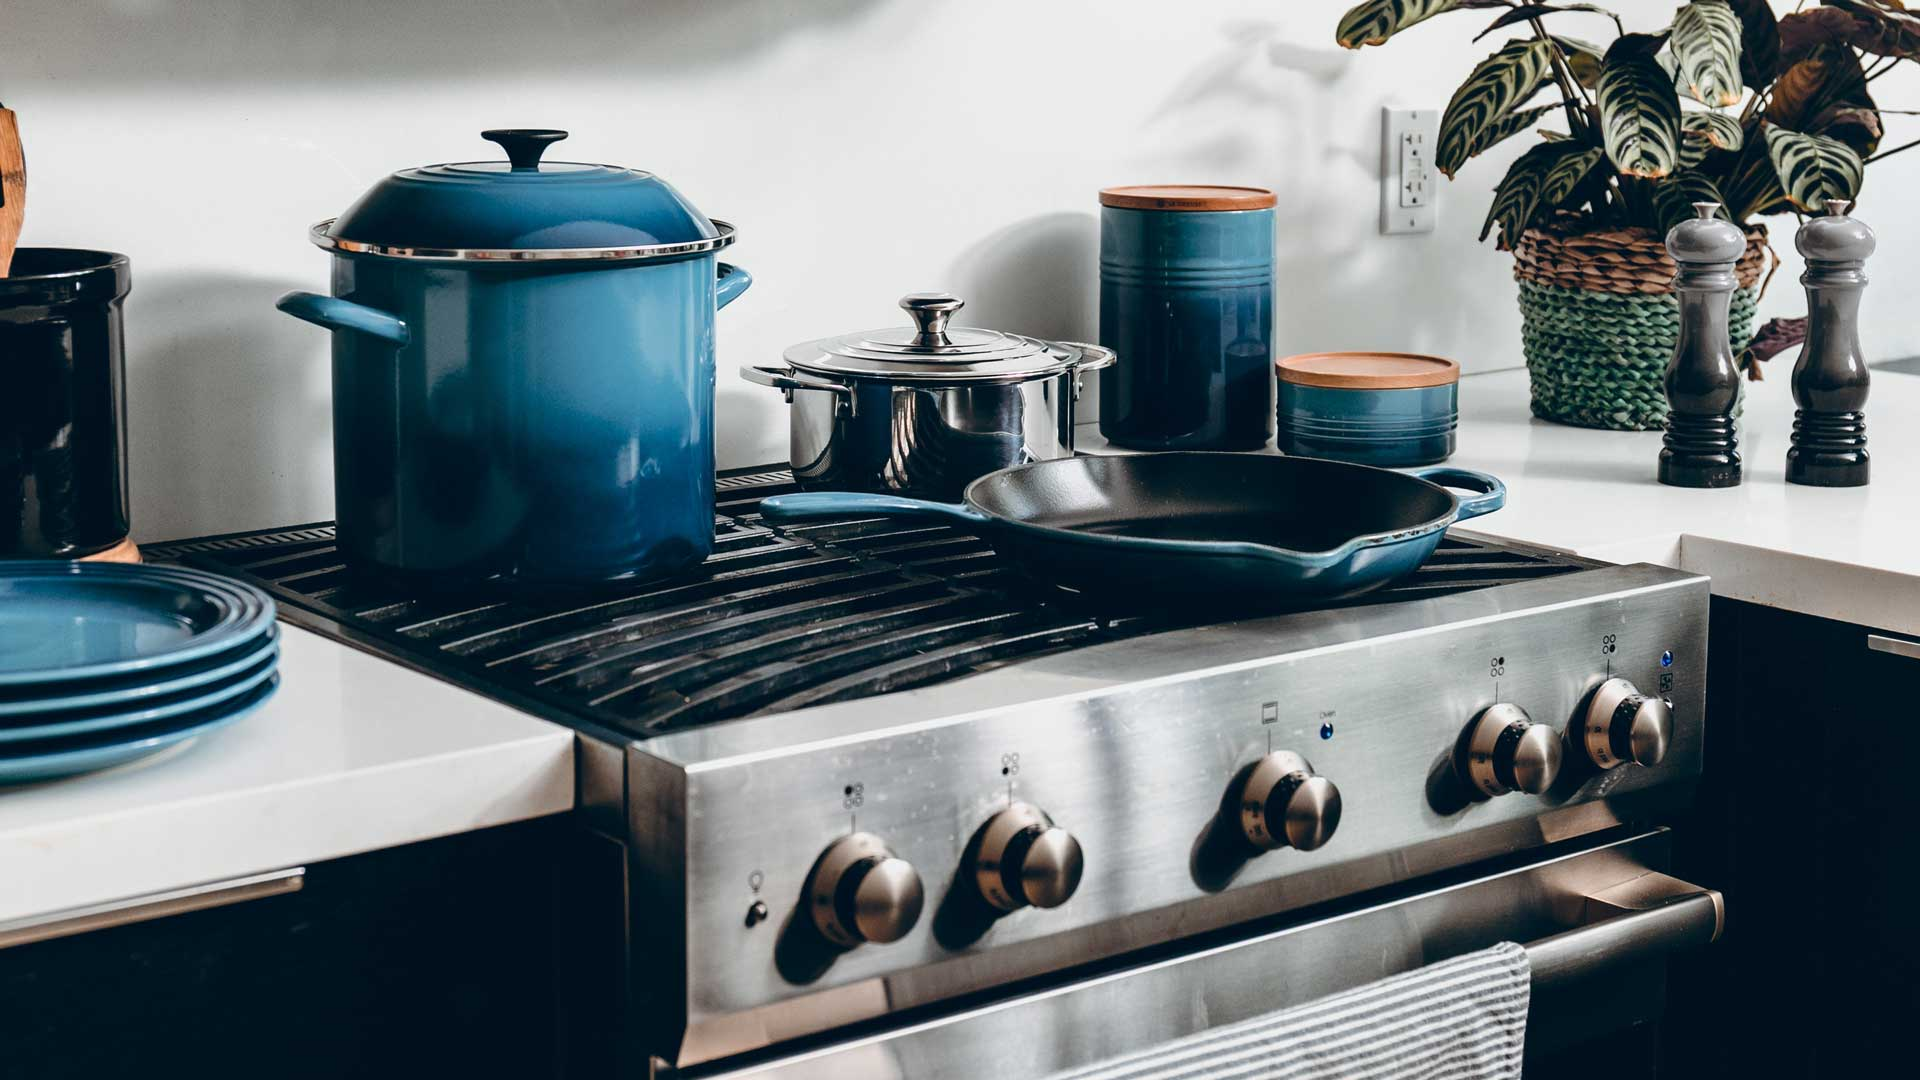 Tips-to-Purchase-the-Best-Gas-Cooktop-for-the-Kitchen-on-thesunrisepost